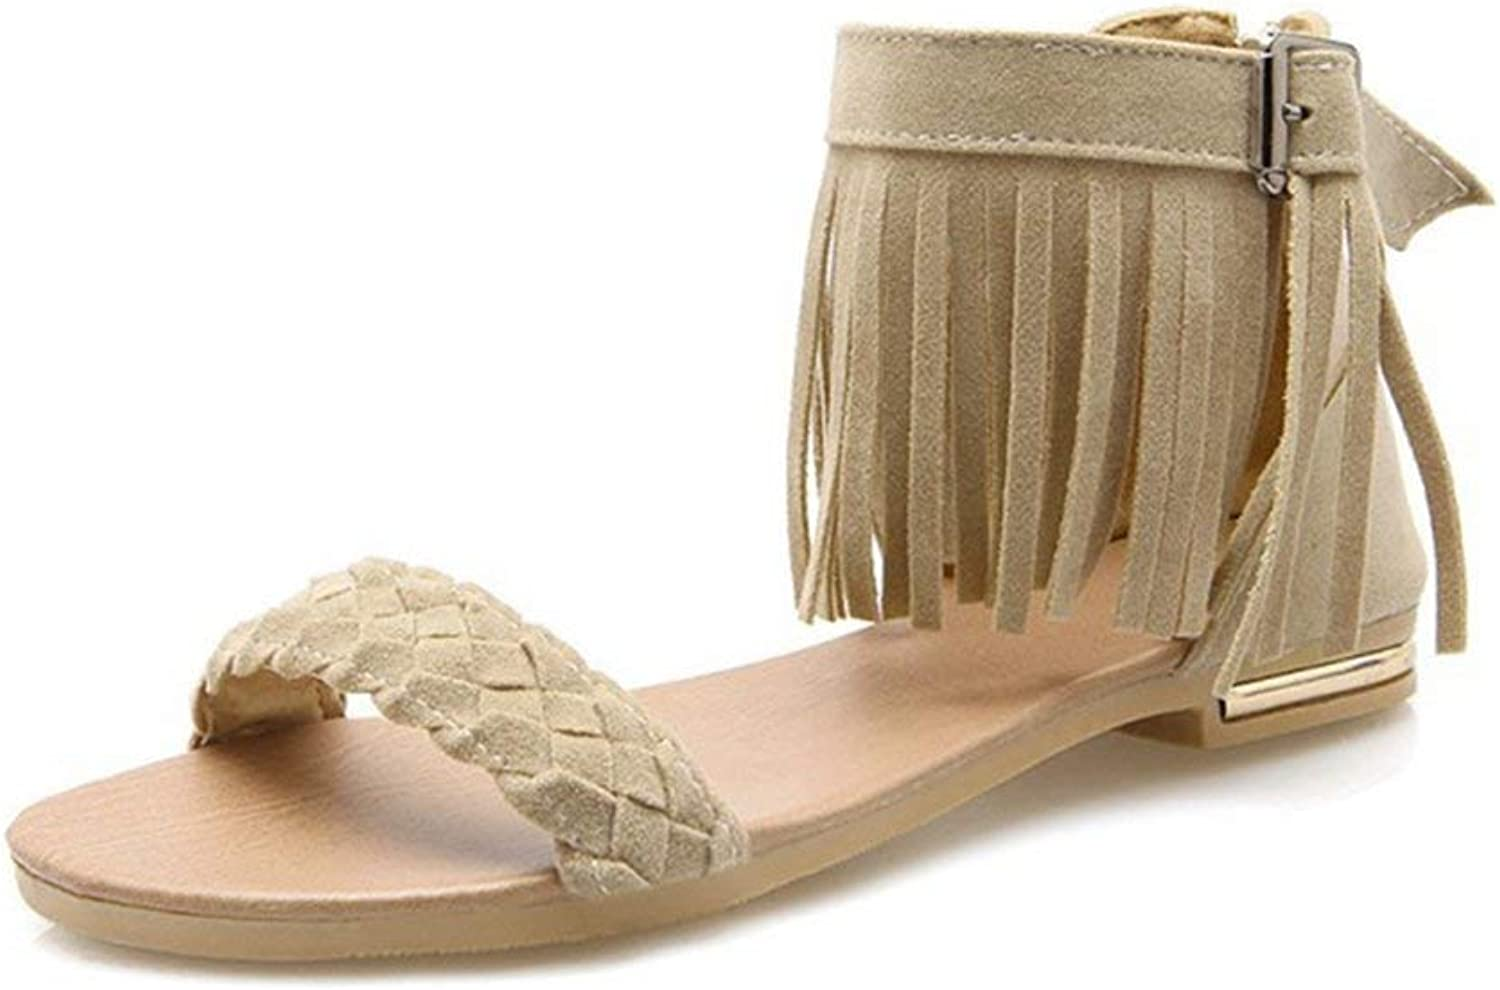 Fashion shoesbox Women's Fringe Flat Sandals Open Toe Comfort Buckle Zipper Tassel Casual Roman Dress Sandals shoes